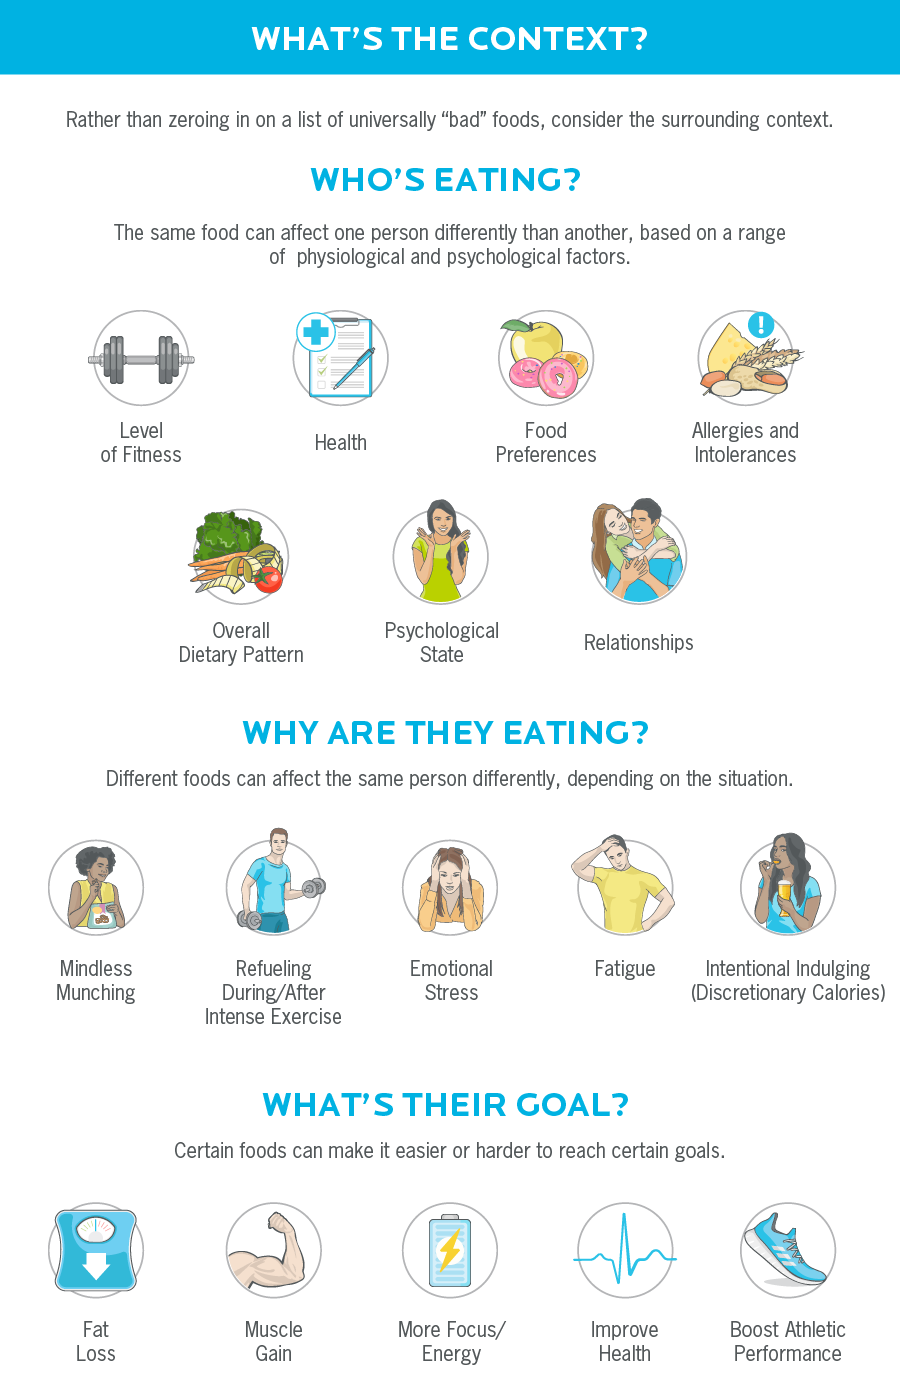 Illustration showing factors to consider when choosing foods such as who eats, why they eat and what their purpose is.